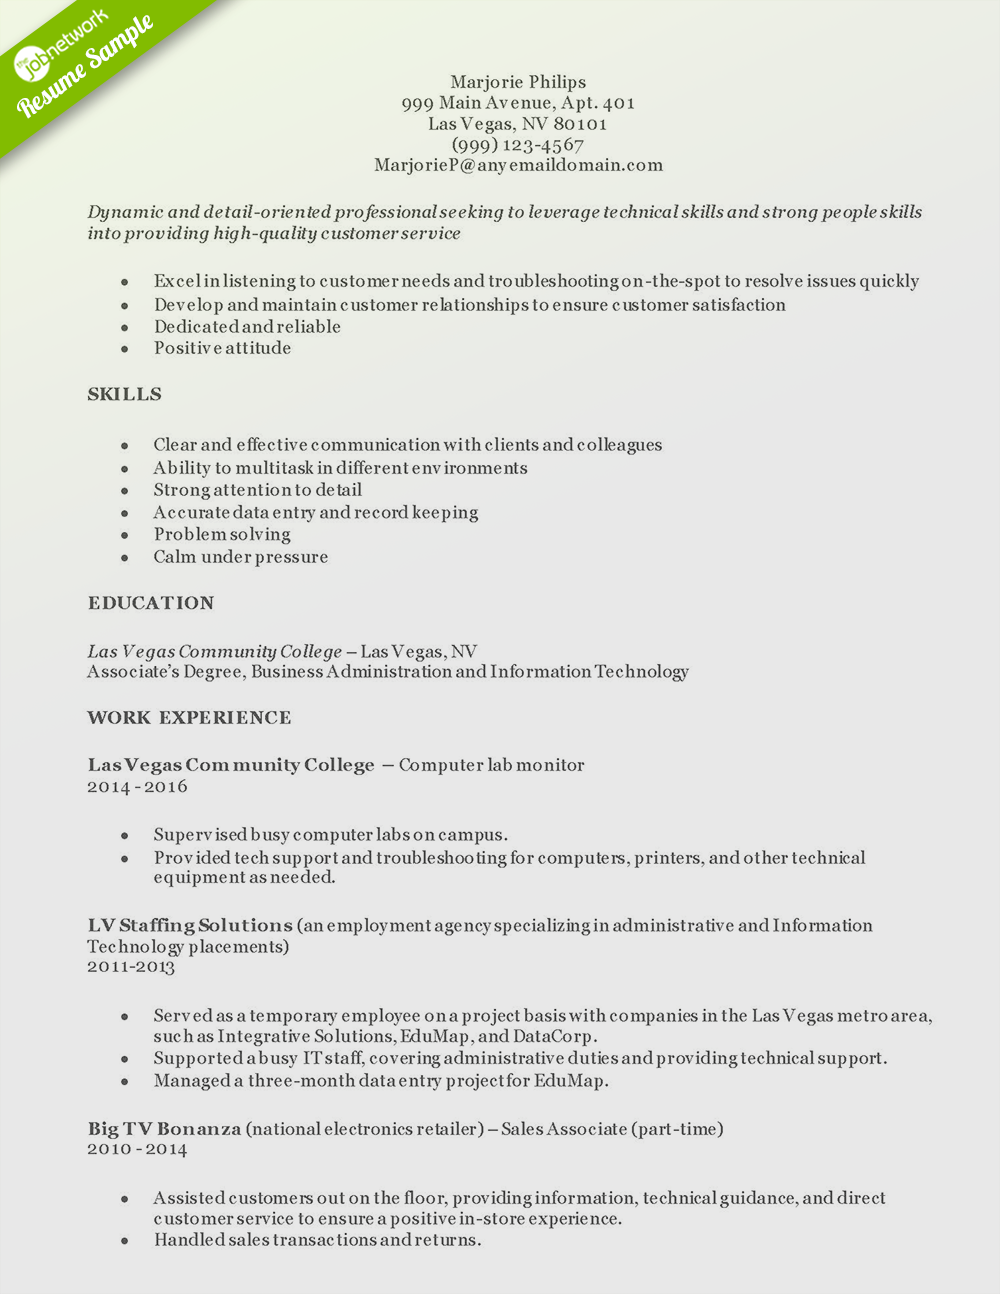 customer service resume - Customer Service Resume